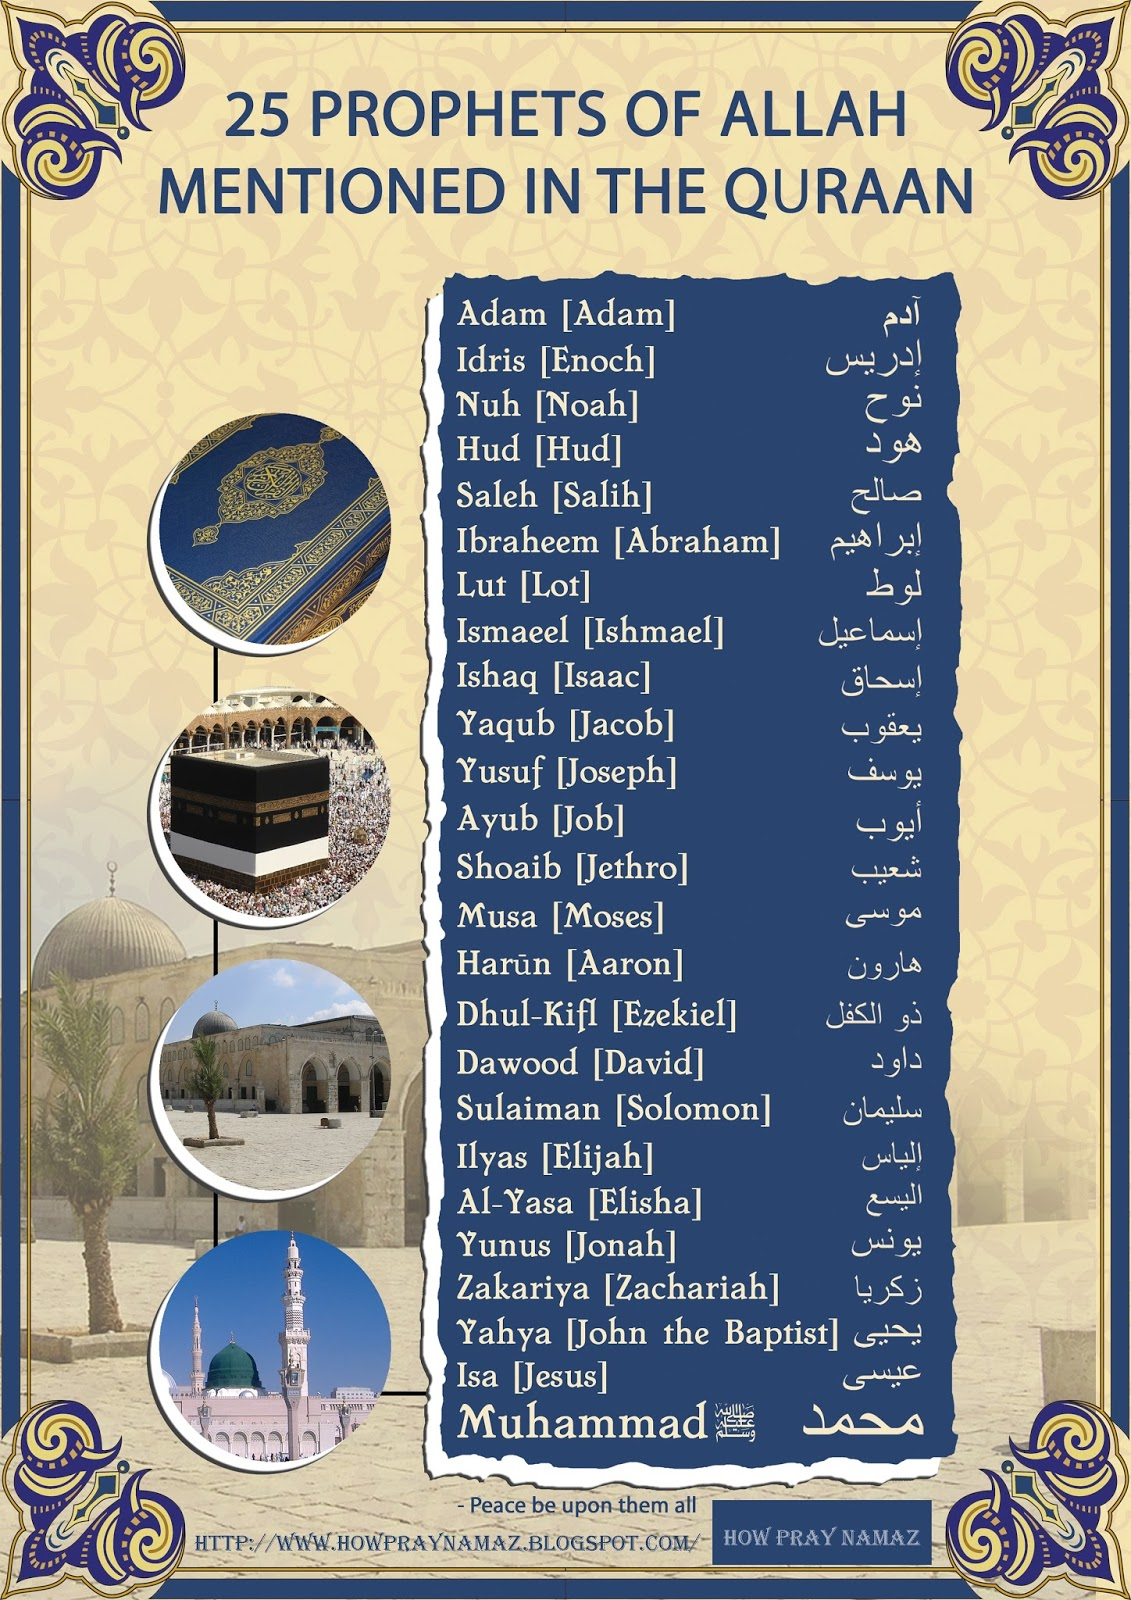 The Prophets of Islam and their names in the Quran 89